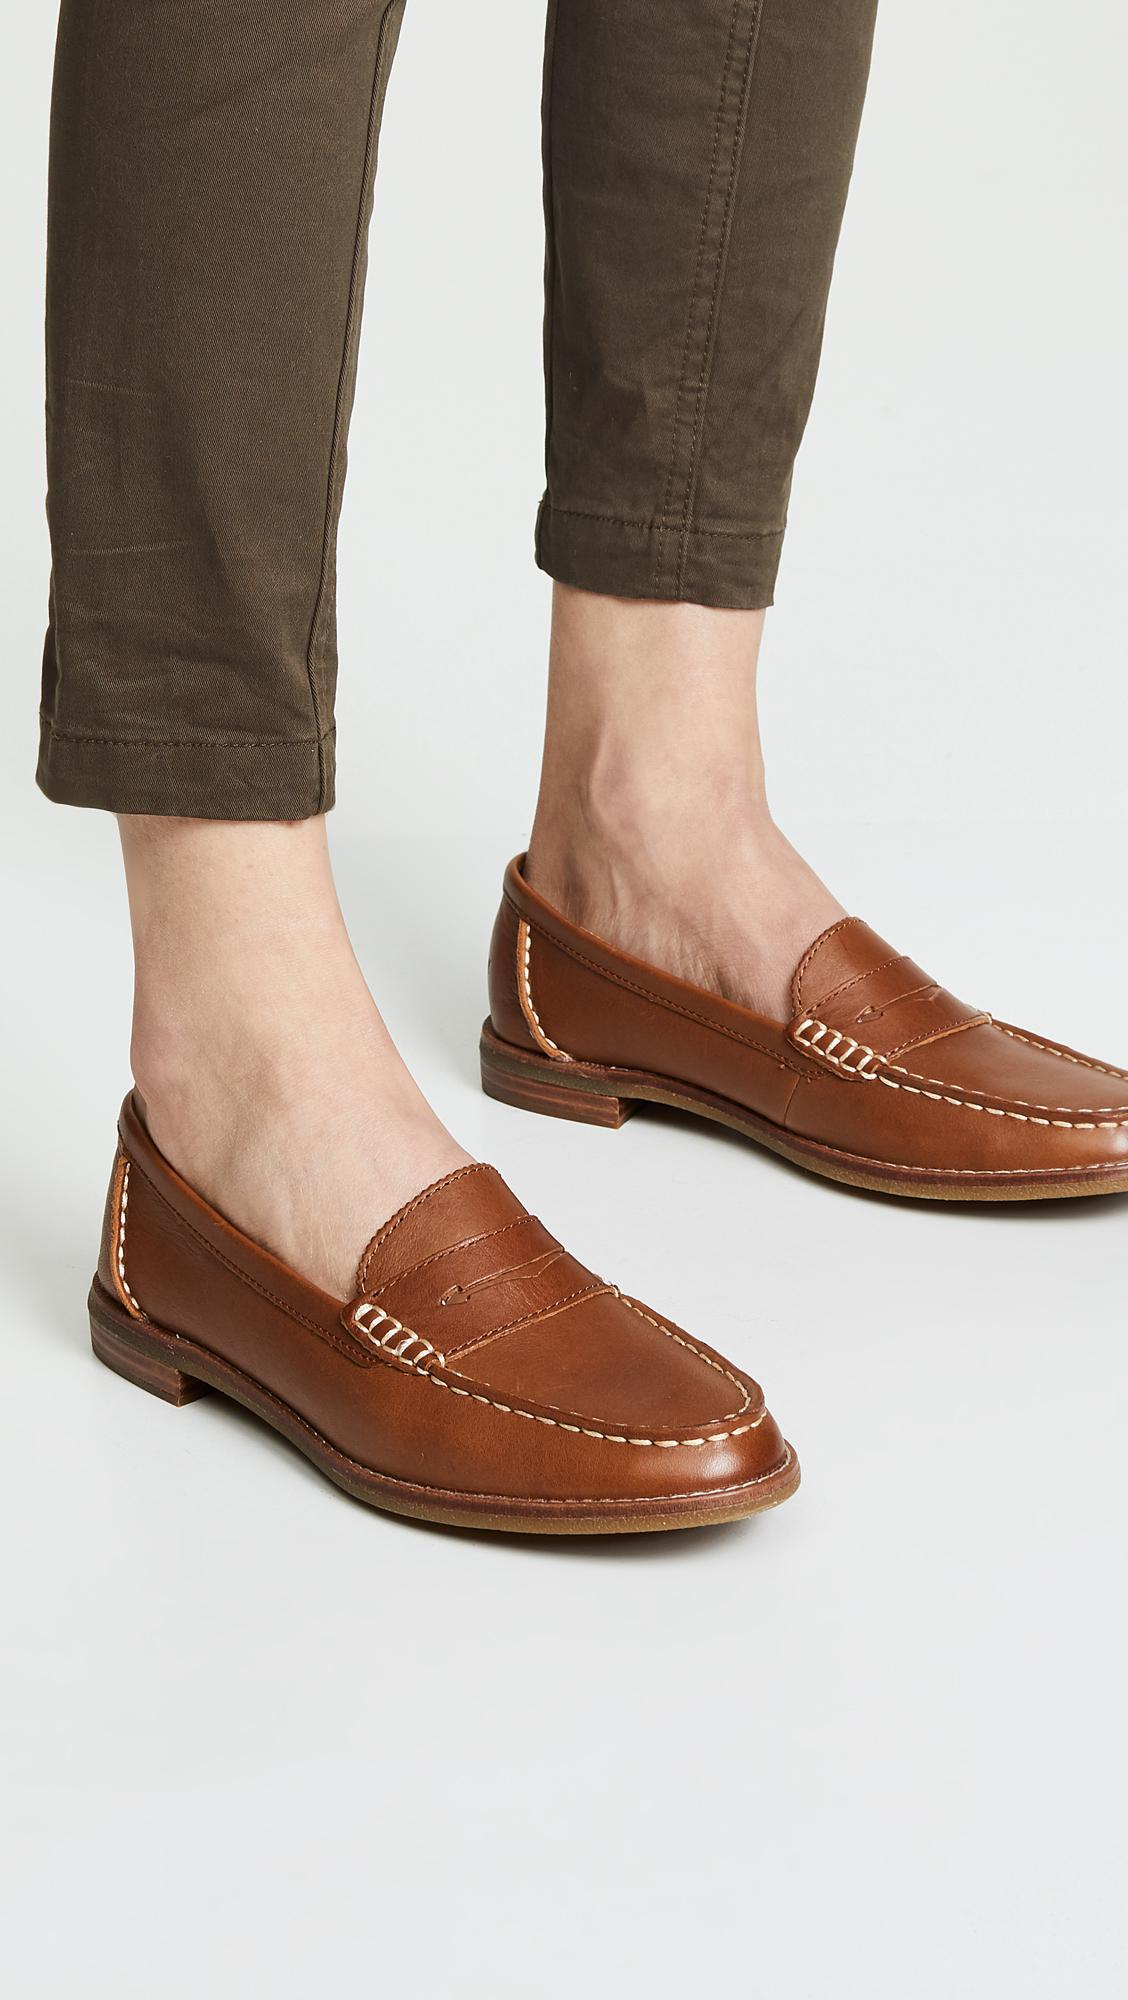 ee638f2cb3b Sperry Top-Sider - Brown Seaport Penny Loafer - Lyst. View fullscreen